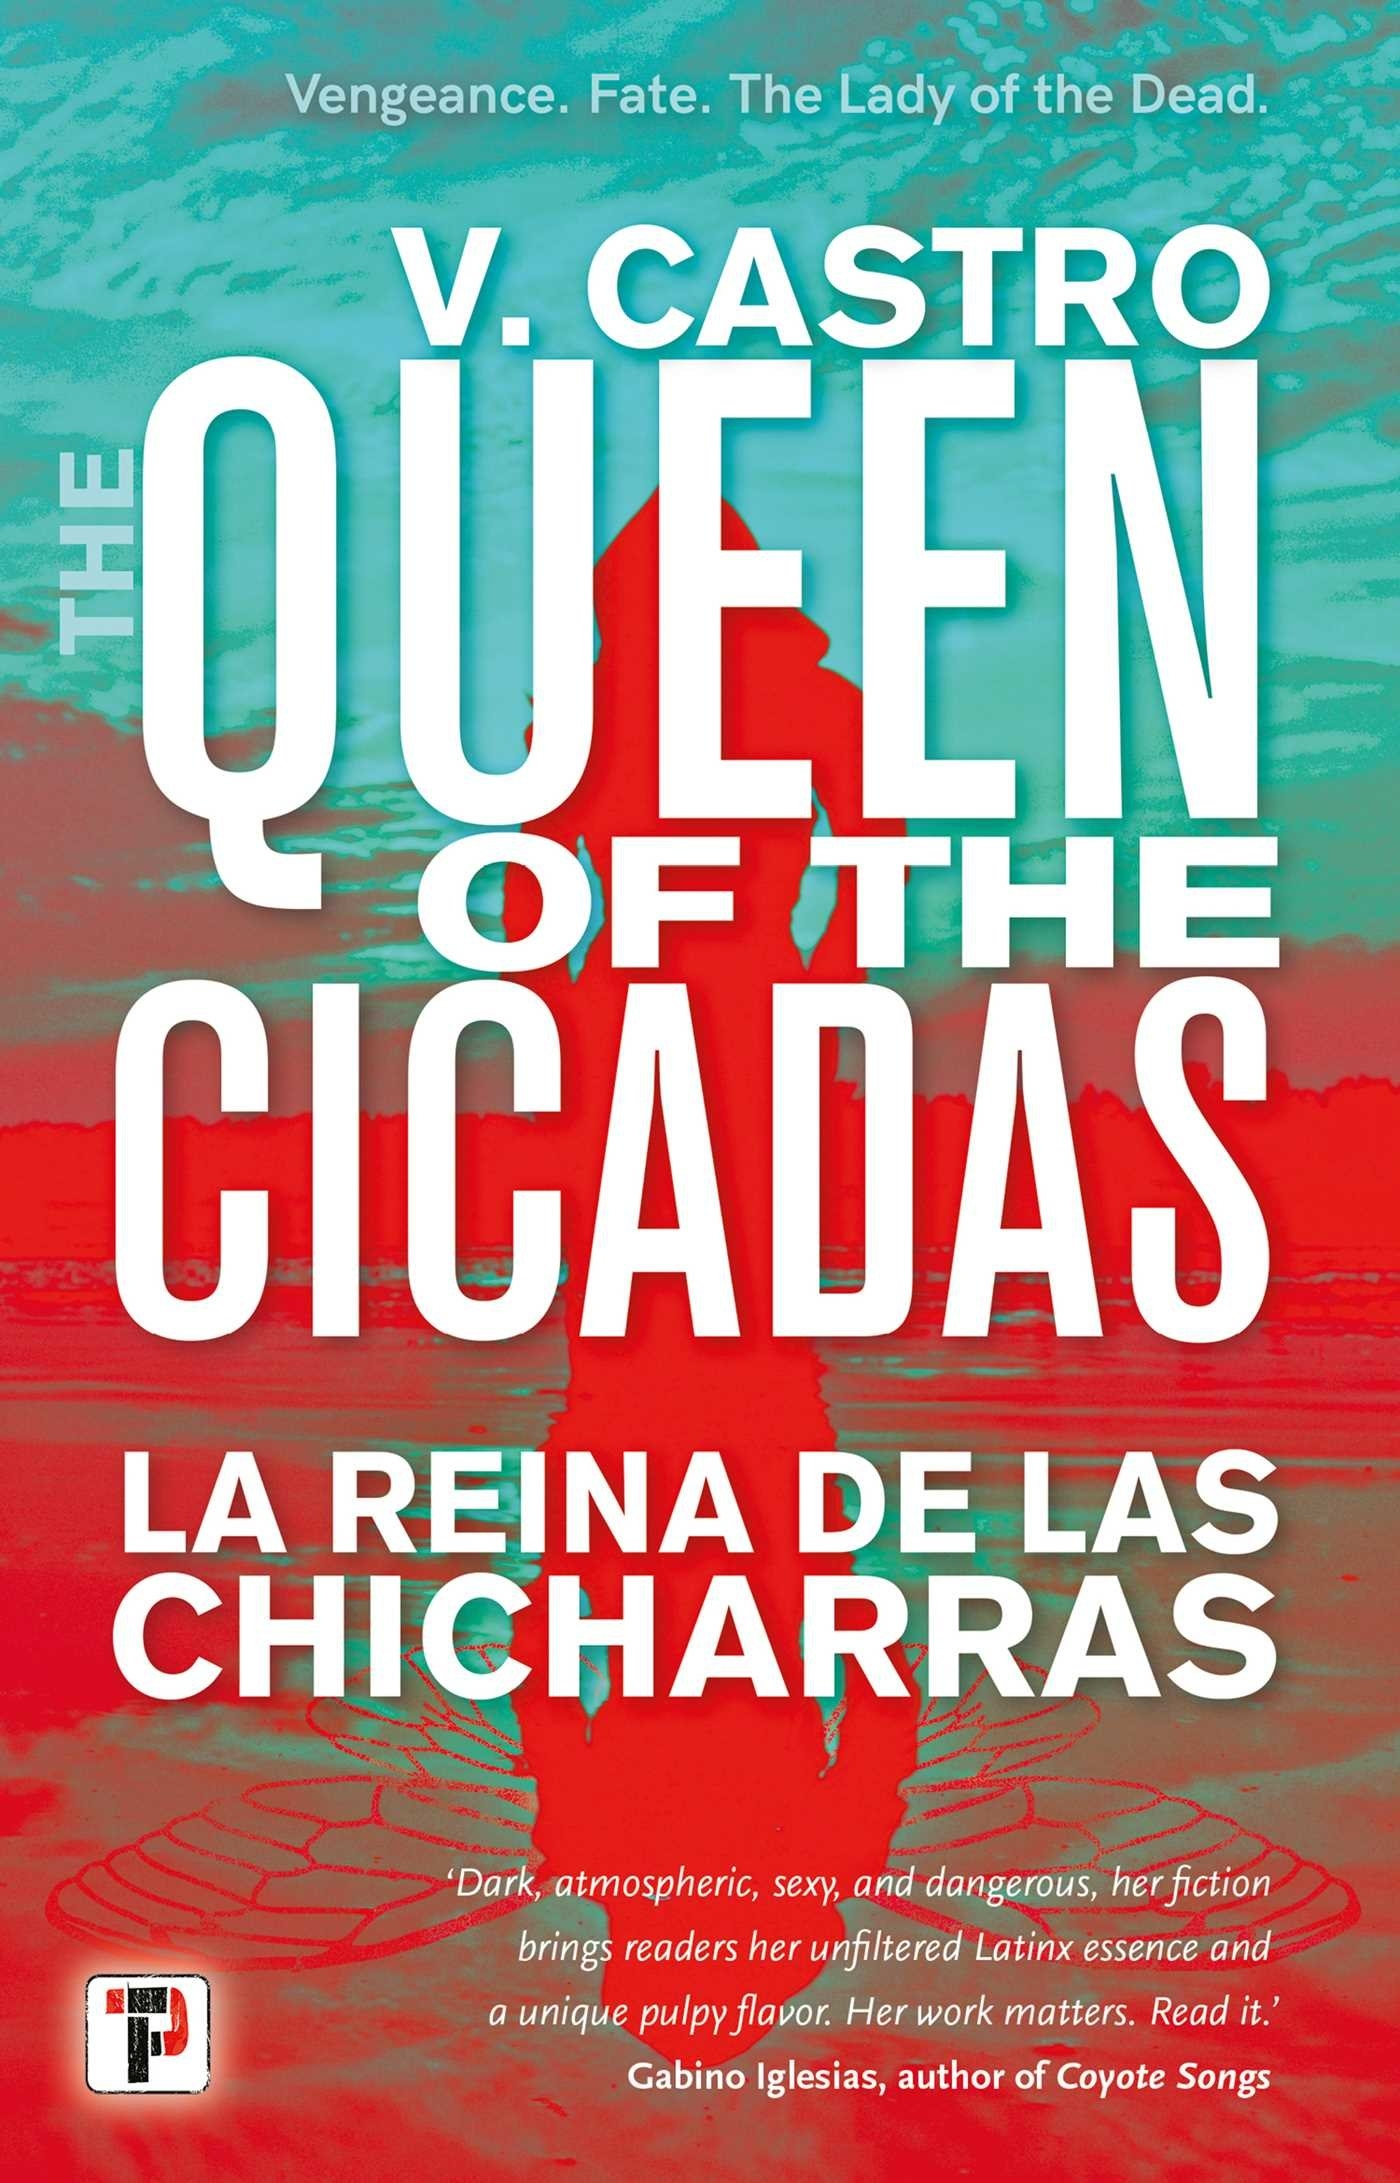 A bright red and green cover shows a silhouette that reflects a woman on top and a cicada on bottom.